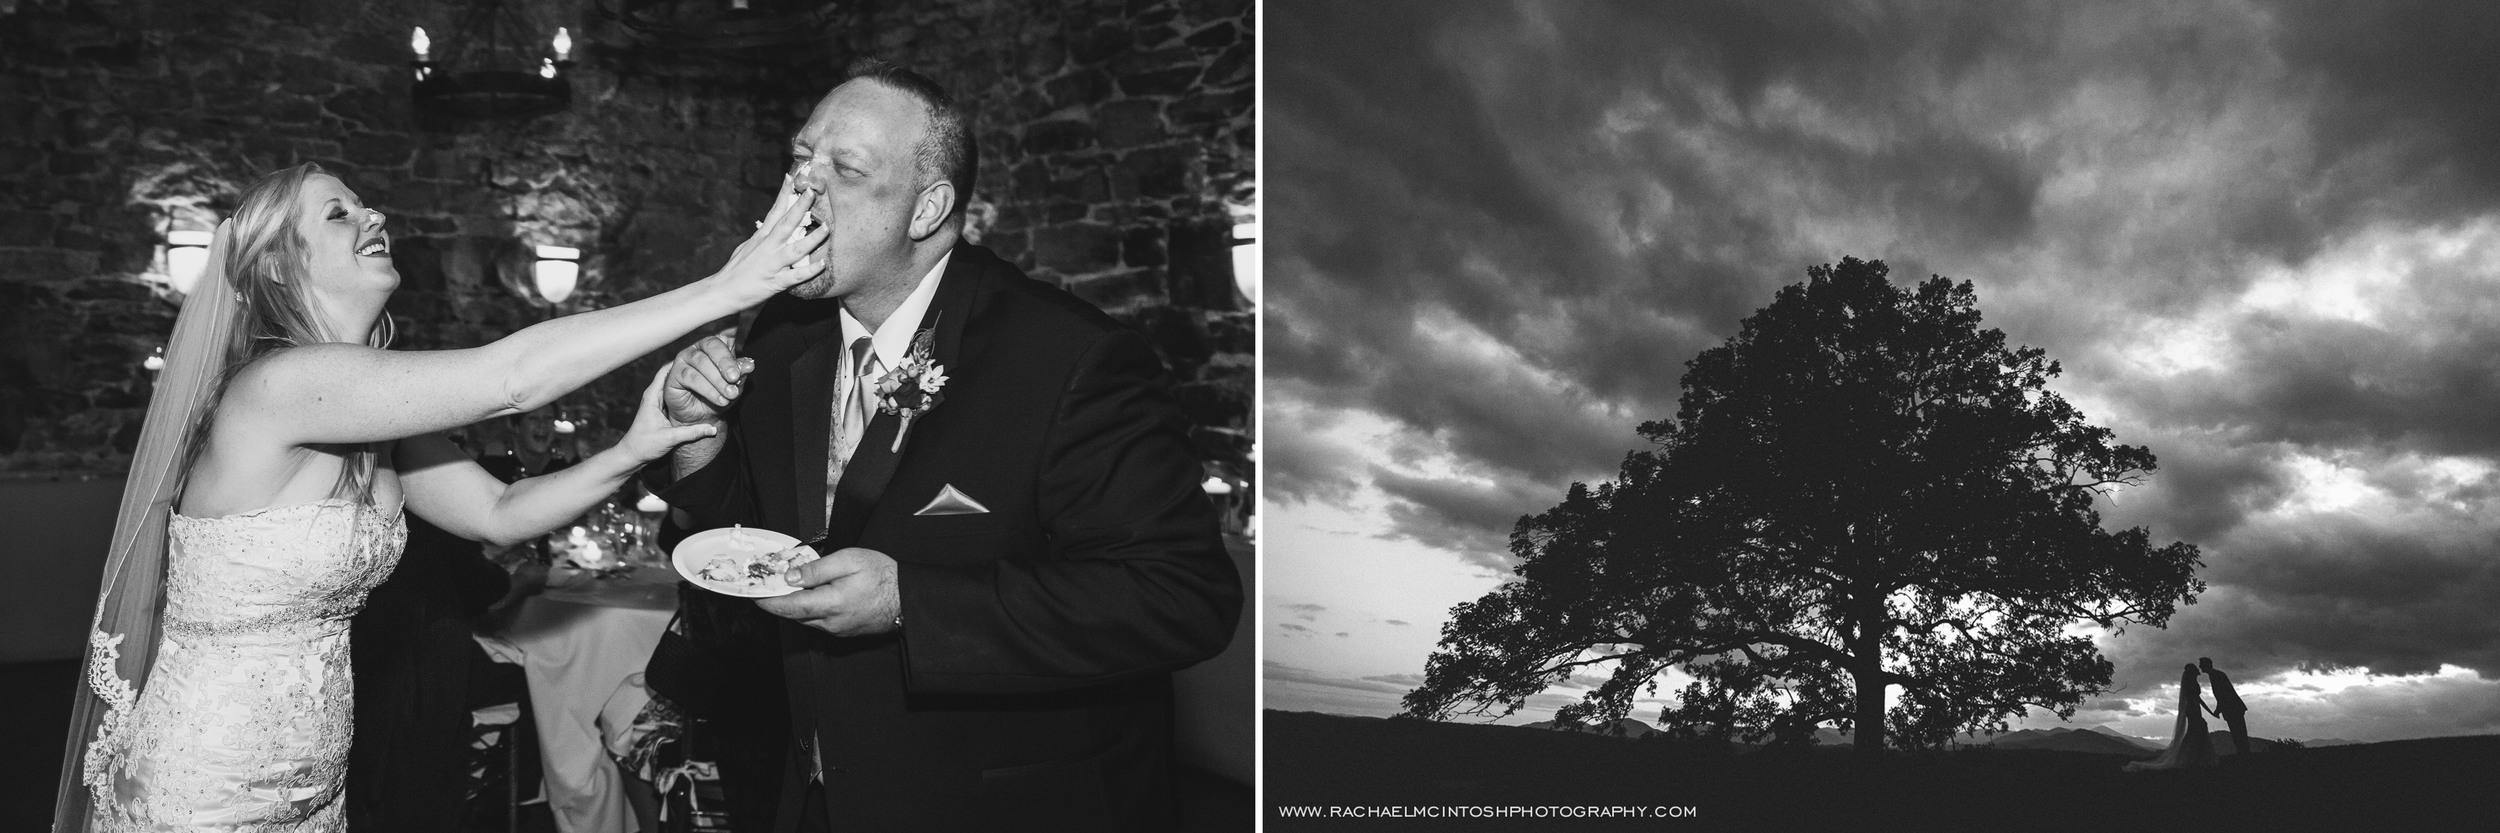 Asheville Wedding Photographer 2014 in Review-67.jpg